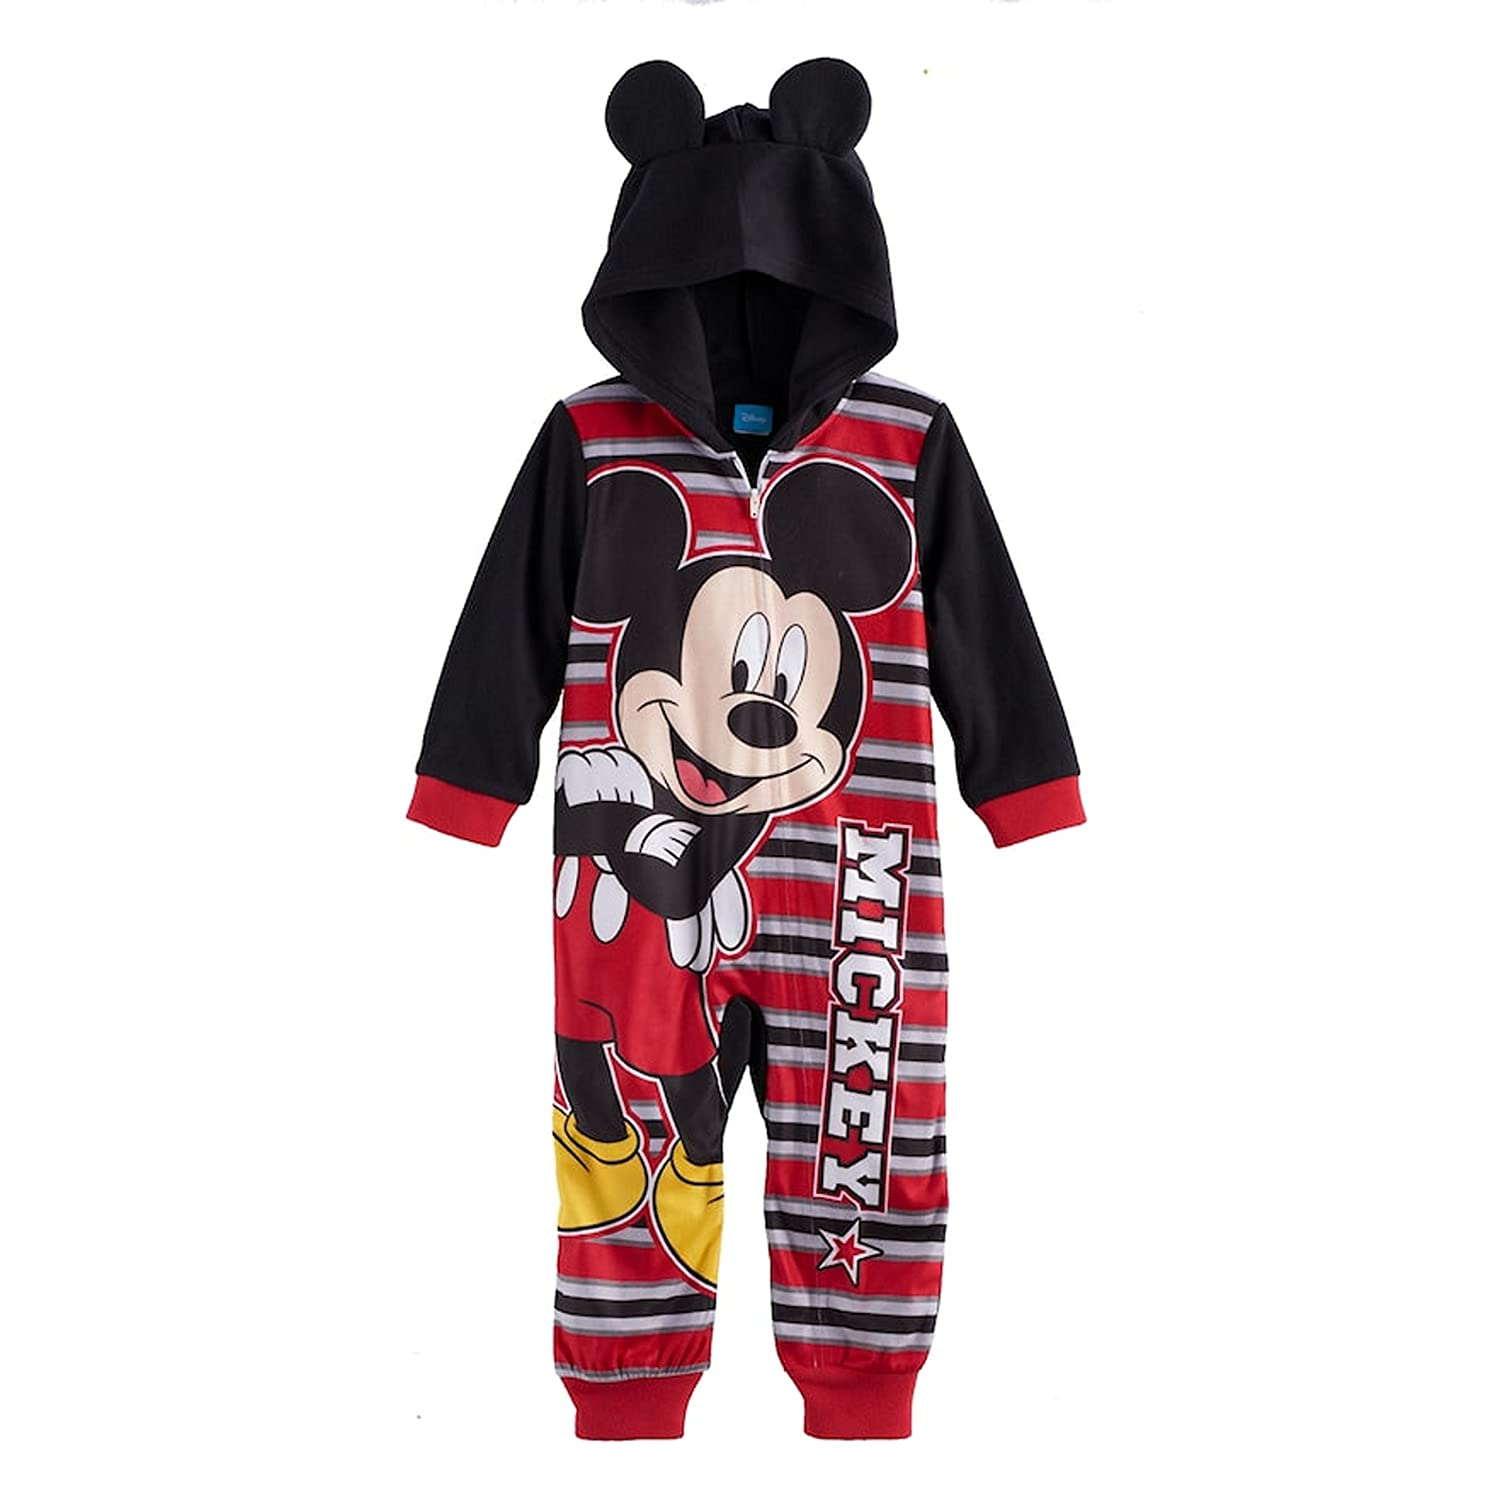 f5b8a1b541d5 Amazon.com  Disney s Mickey Mouse Hooded One-Piece Pajamas Toddler ...